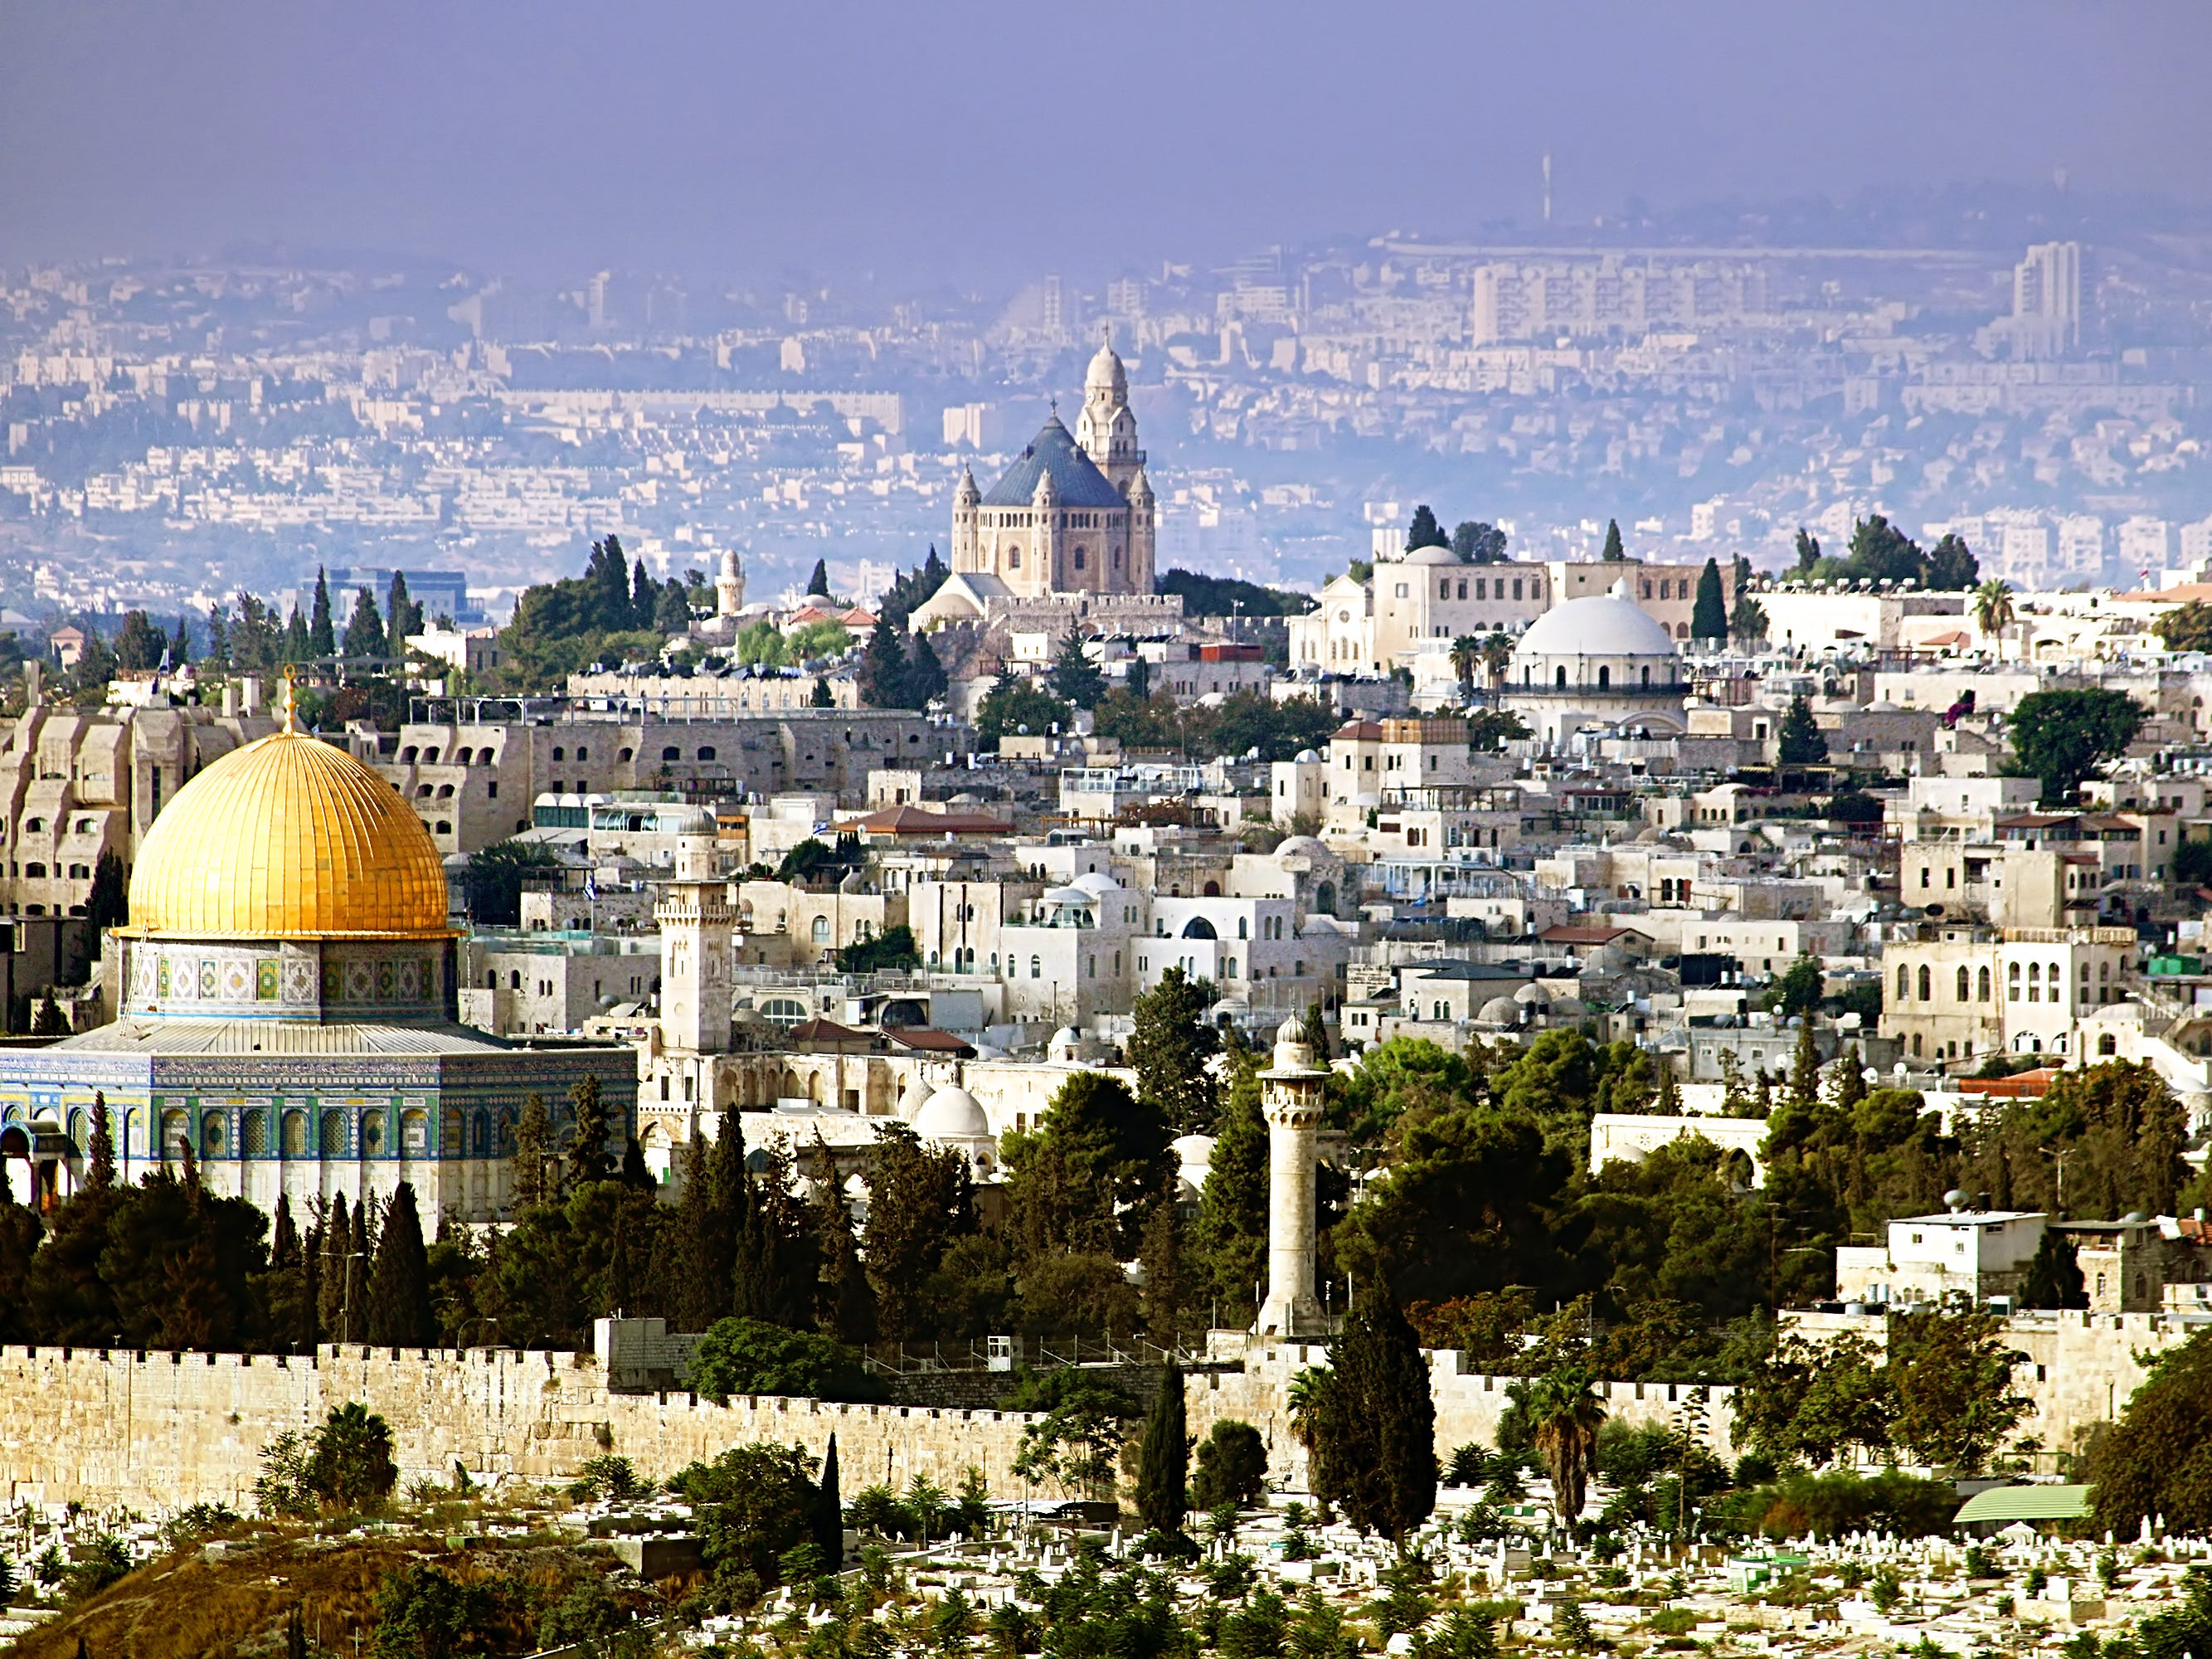 Israel: Explore the ancient biblical sites and colorful flea markets of Jerusalem; stroll Tel Aviv's vibrant neighborhoods; go for a hike and sample wine in the north; or float in the Dead Sea (the lowest point on earth) and Red Sea in the south — all of it can be done on a budget. Another way you'll save? Many of the Holy Land's hotels offer lavish, complimentary buffet breakfasts so you can eat shakshuka to your heart's content (and, of course, you can fill up on cheap and delicious hummus and falafel everywhere you go).